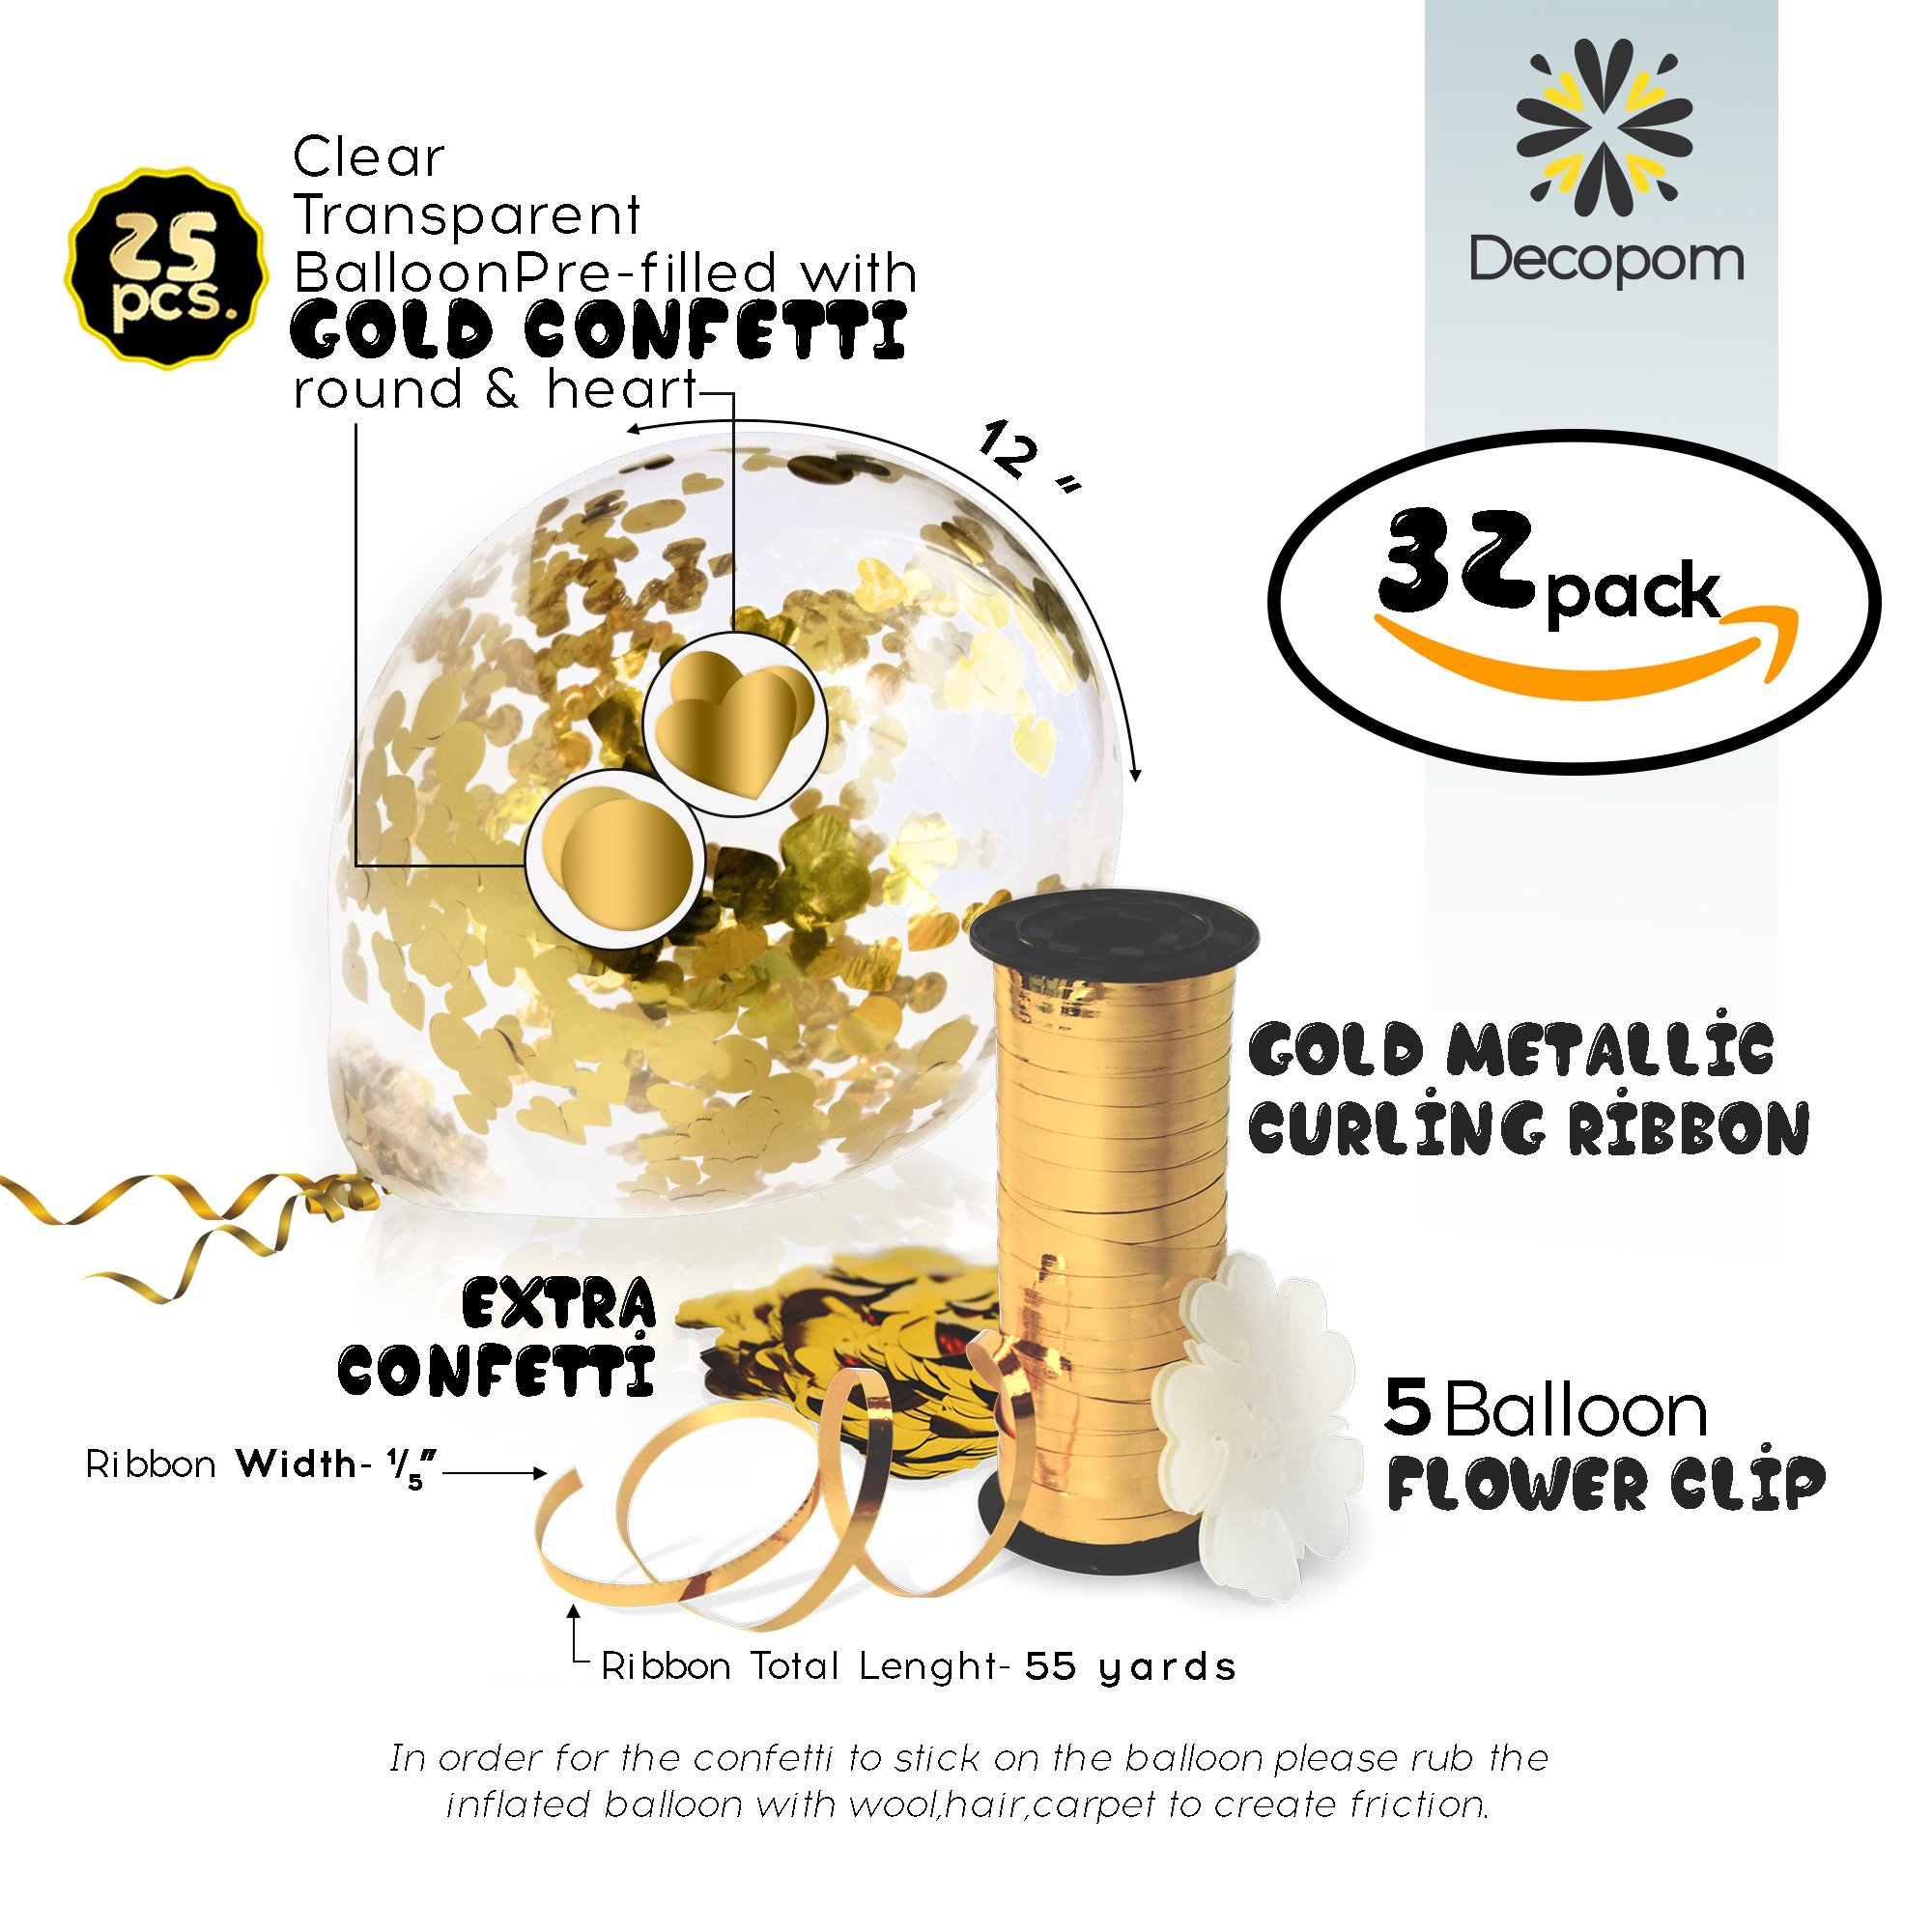 Decopom Gold Confetti Balloons Curling Ribbon Roll & Flower Clips 32 Pack | Premium 12 Inch Latex Party Balloons - Filled Round Golden Mylar Foil Dot Confetti Birthday, Wedding, Proposal by Decopom (Image #2)